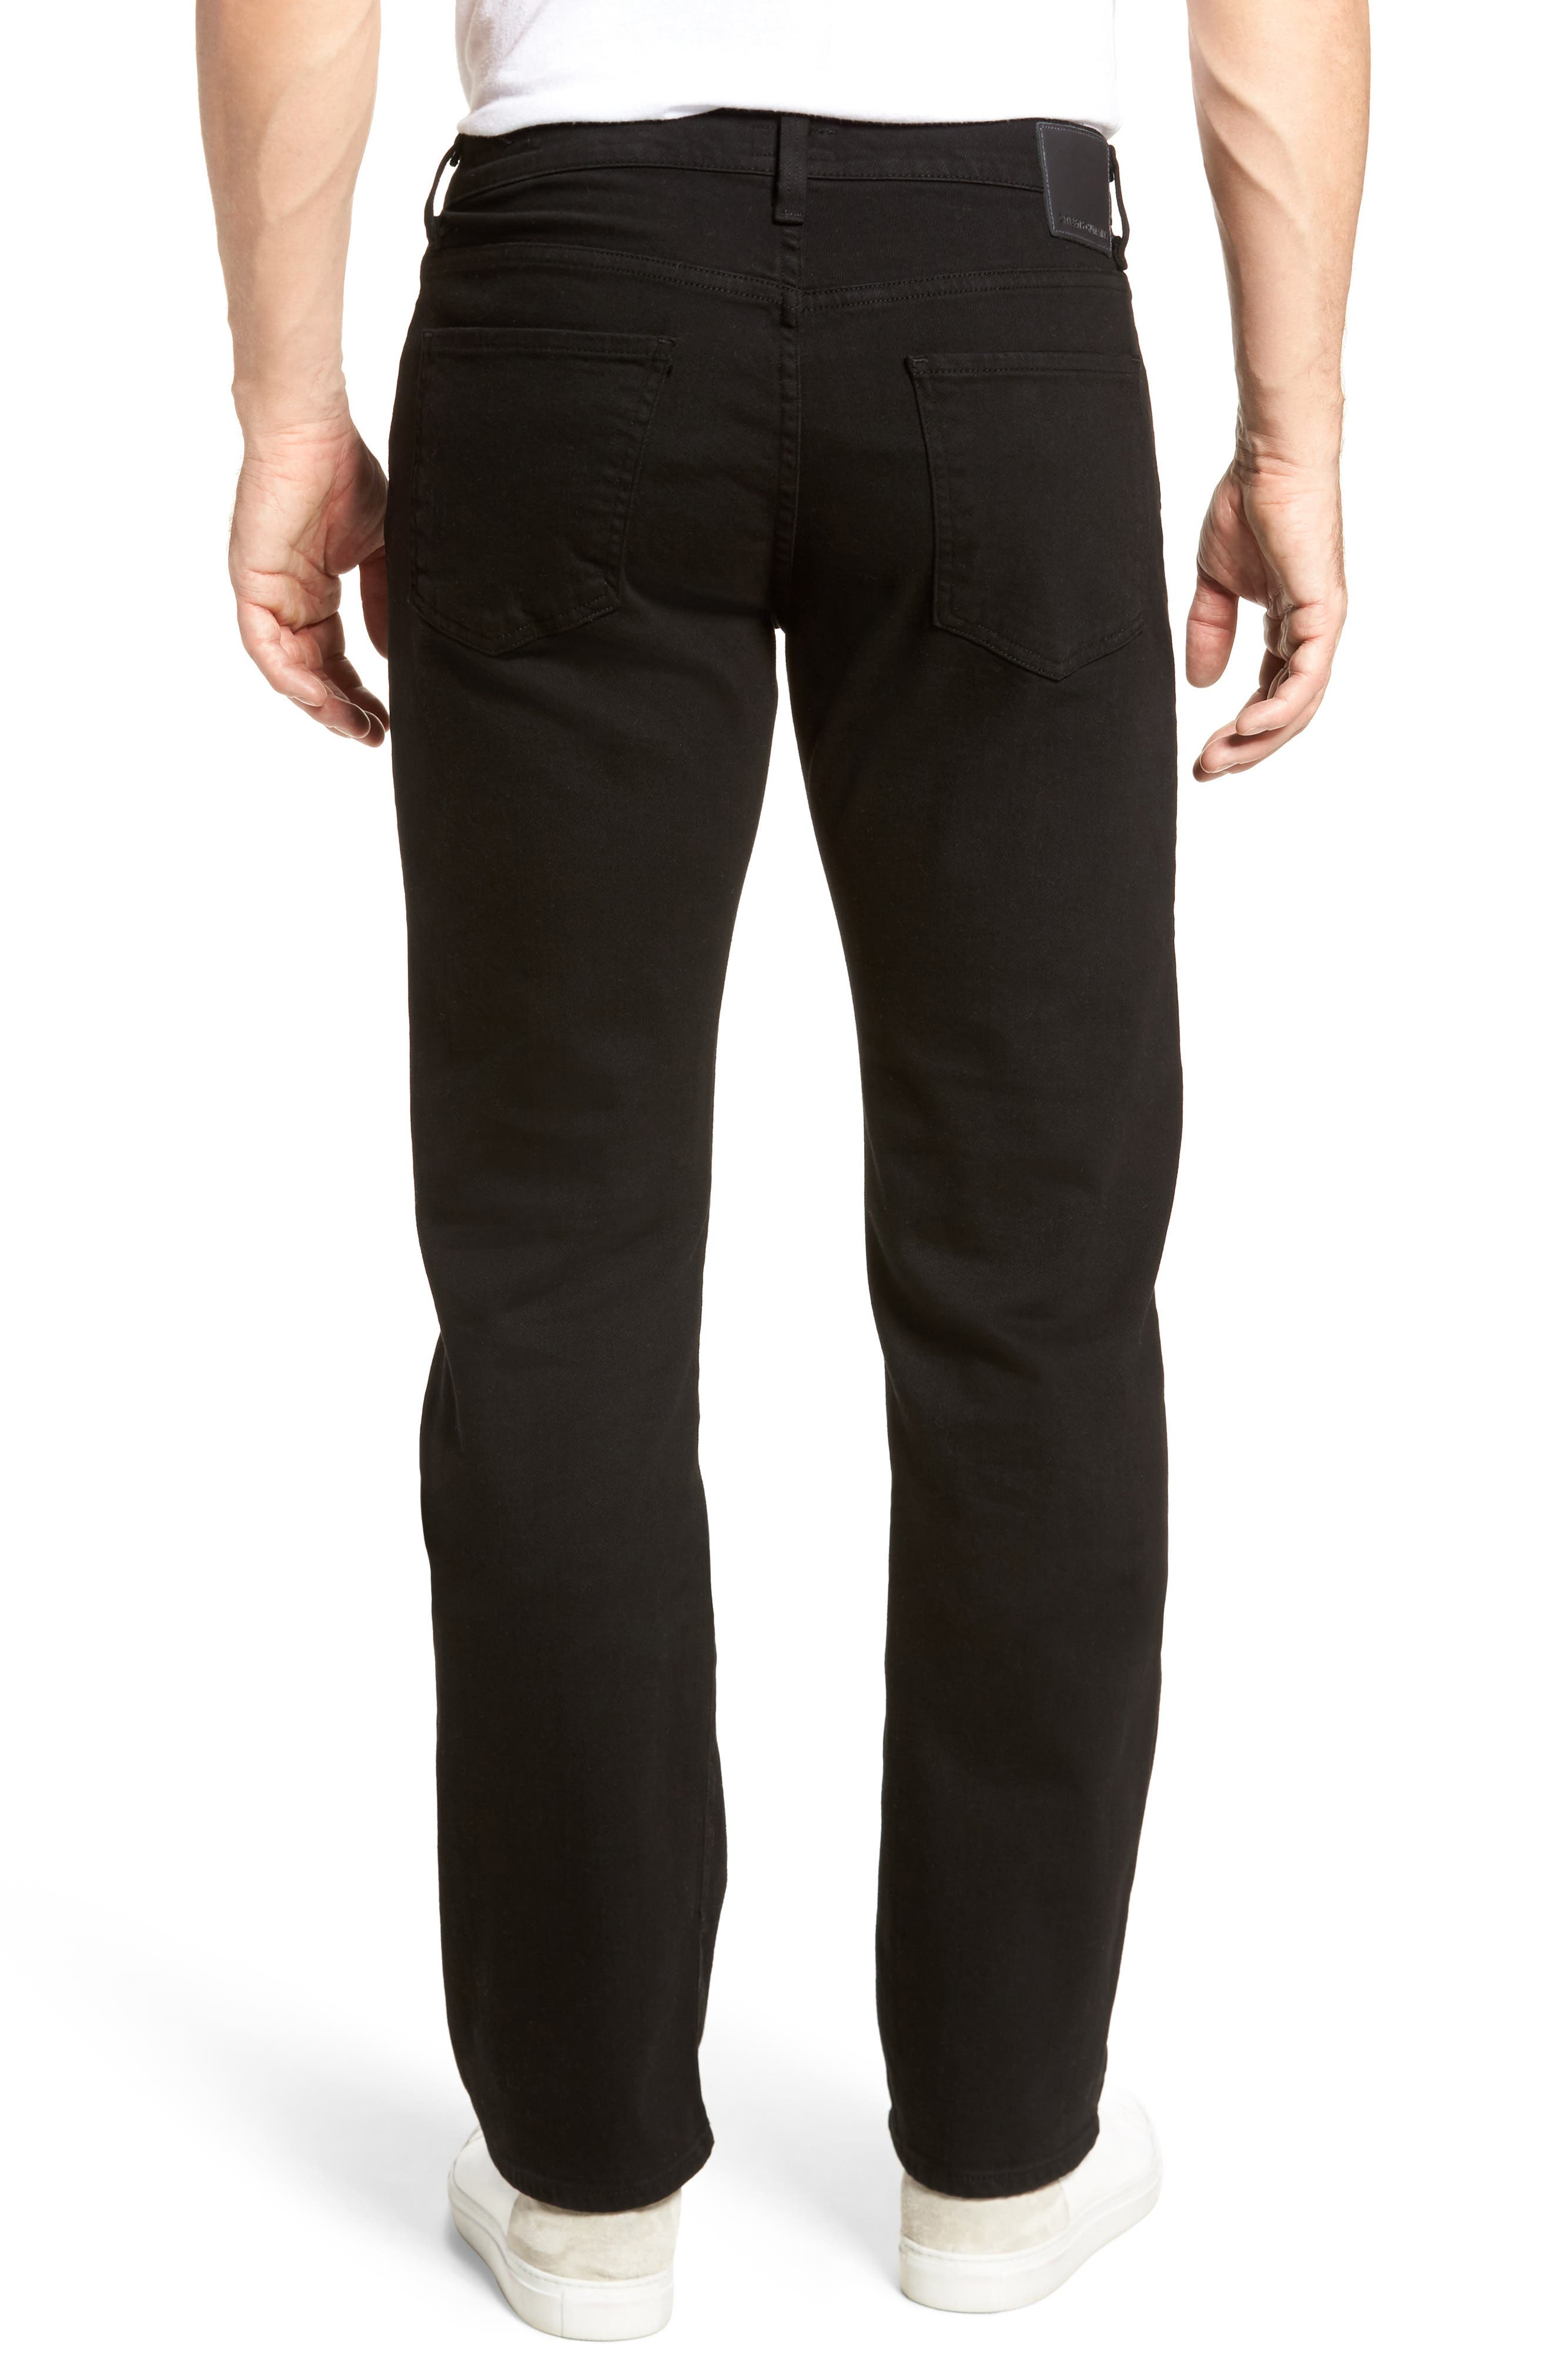 Sid Straight Fit Jeans,                             Alternate thumbnail 2, color,                             004